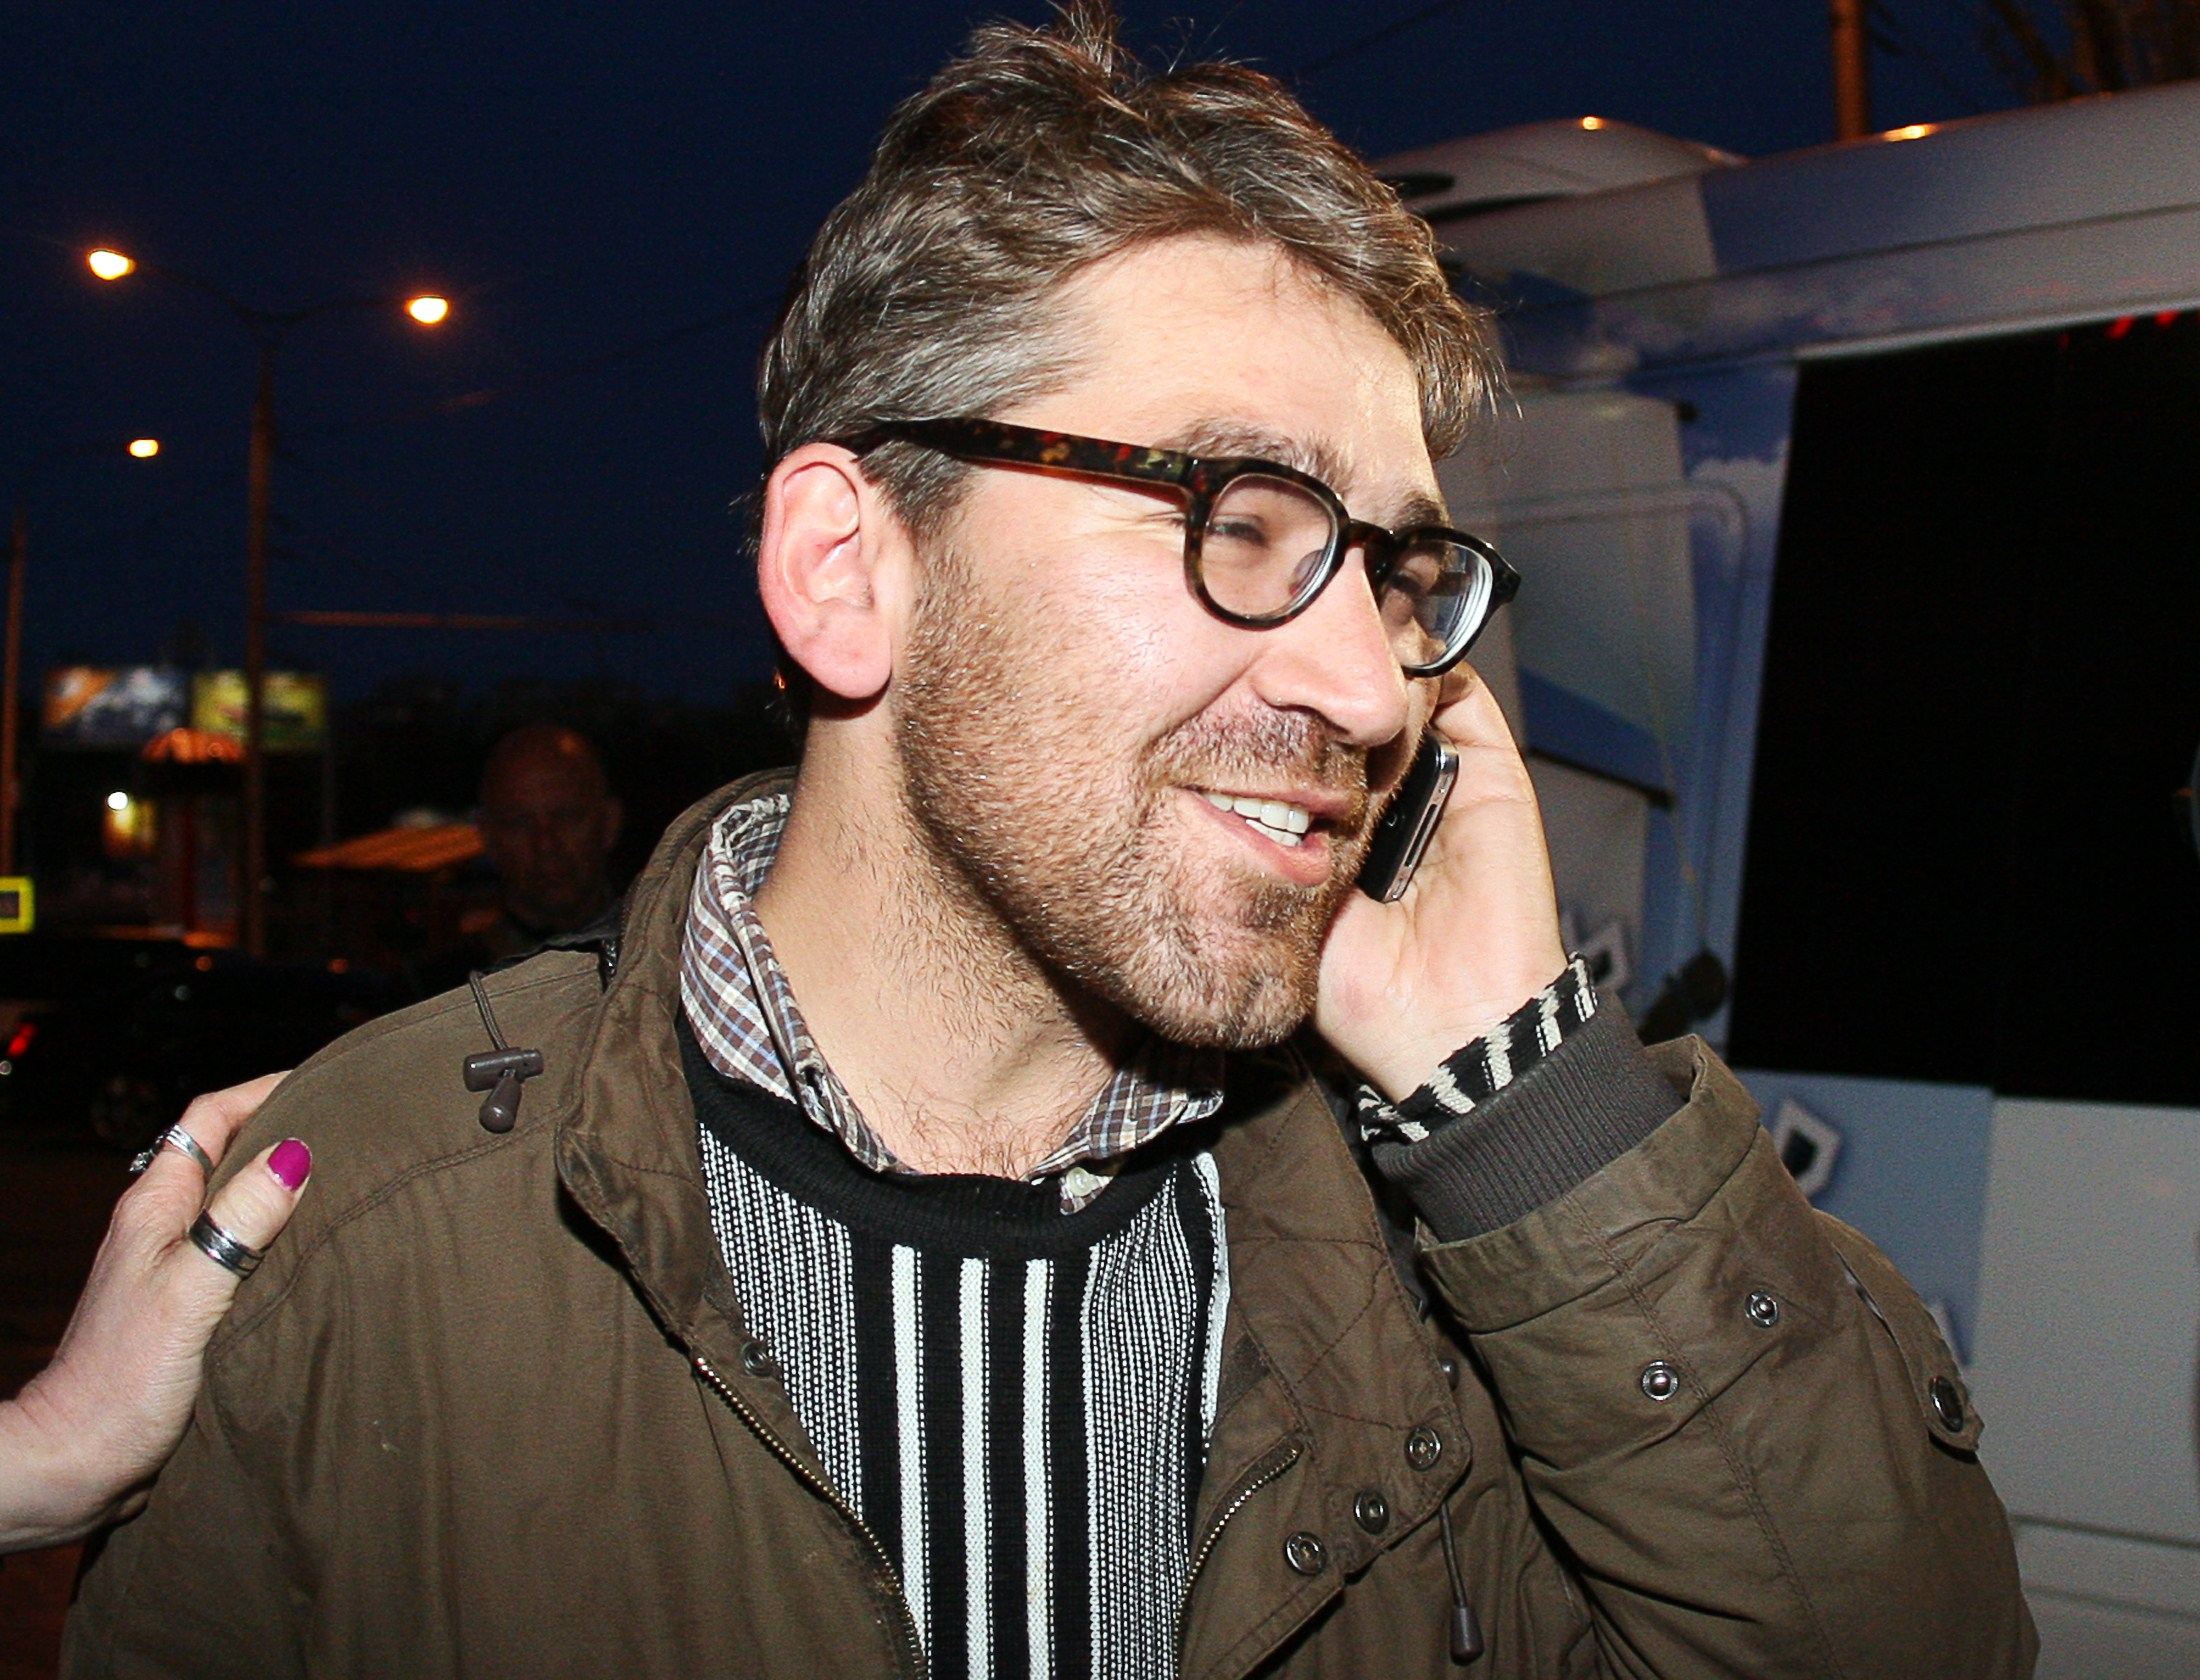 Simon Ostrovsky, who was abducted and held by pro-Kremlin rebels in east Ukraine this week, speaks on a mobile phone as he arrives in a hotel in the eastern Ukrainian city of Donetsk after being freed, on April 24, 2014.